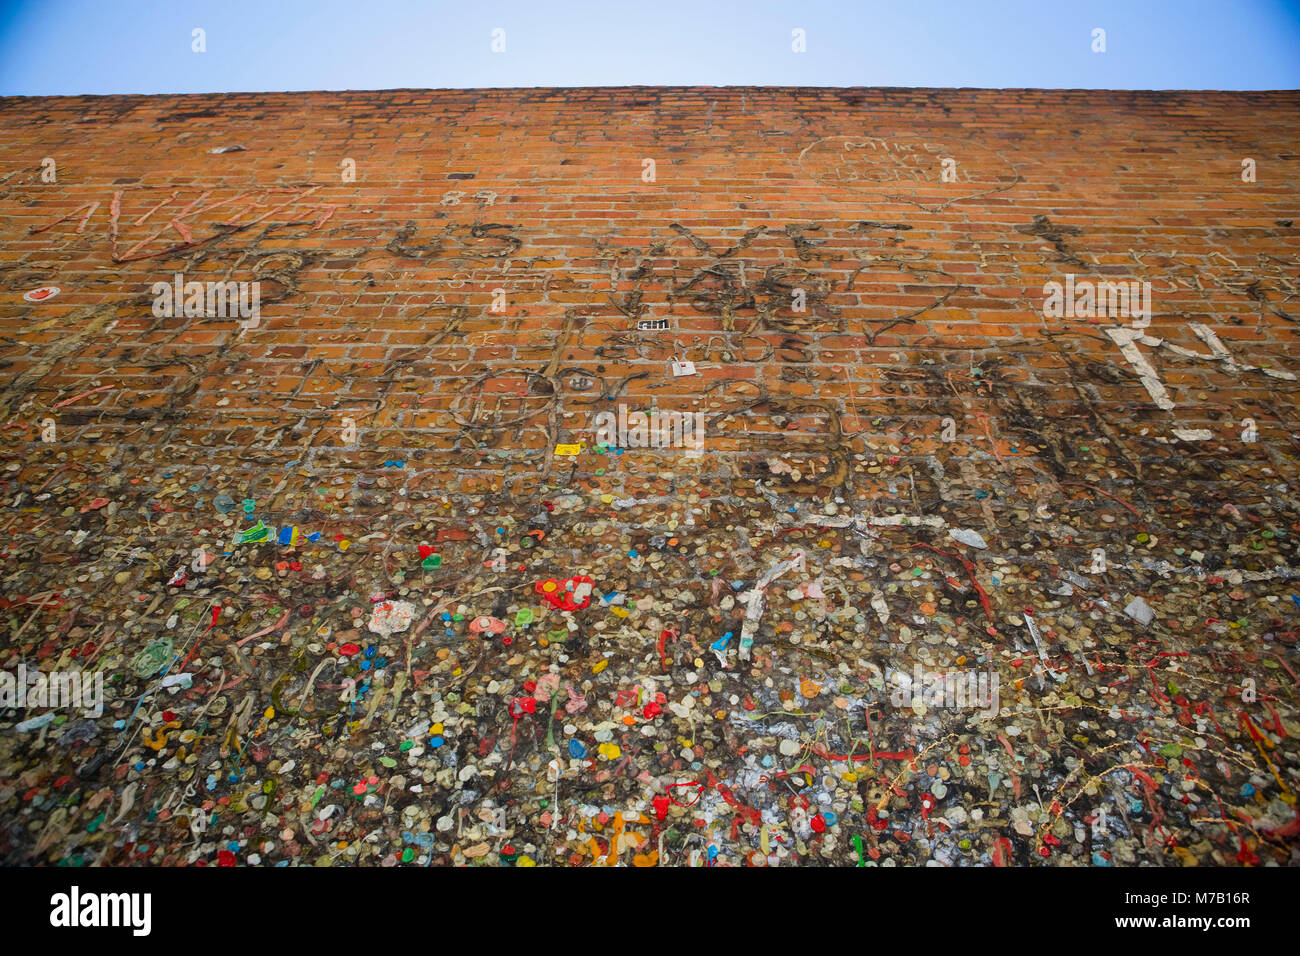 Les gencives de la bulle sur un mur, Bubble Gum Alley, San Luis Obispo, Californie, USA Photo Stock